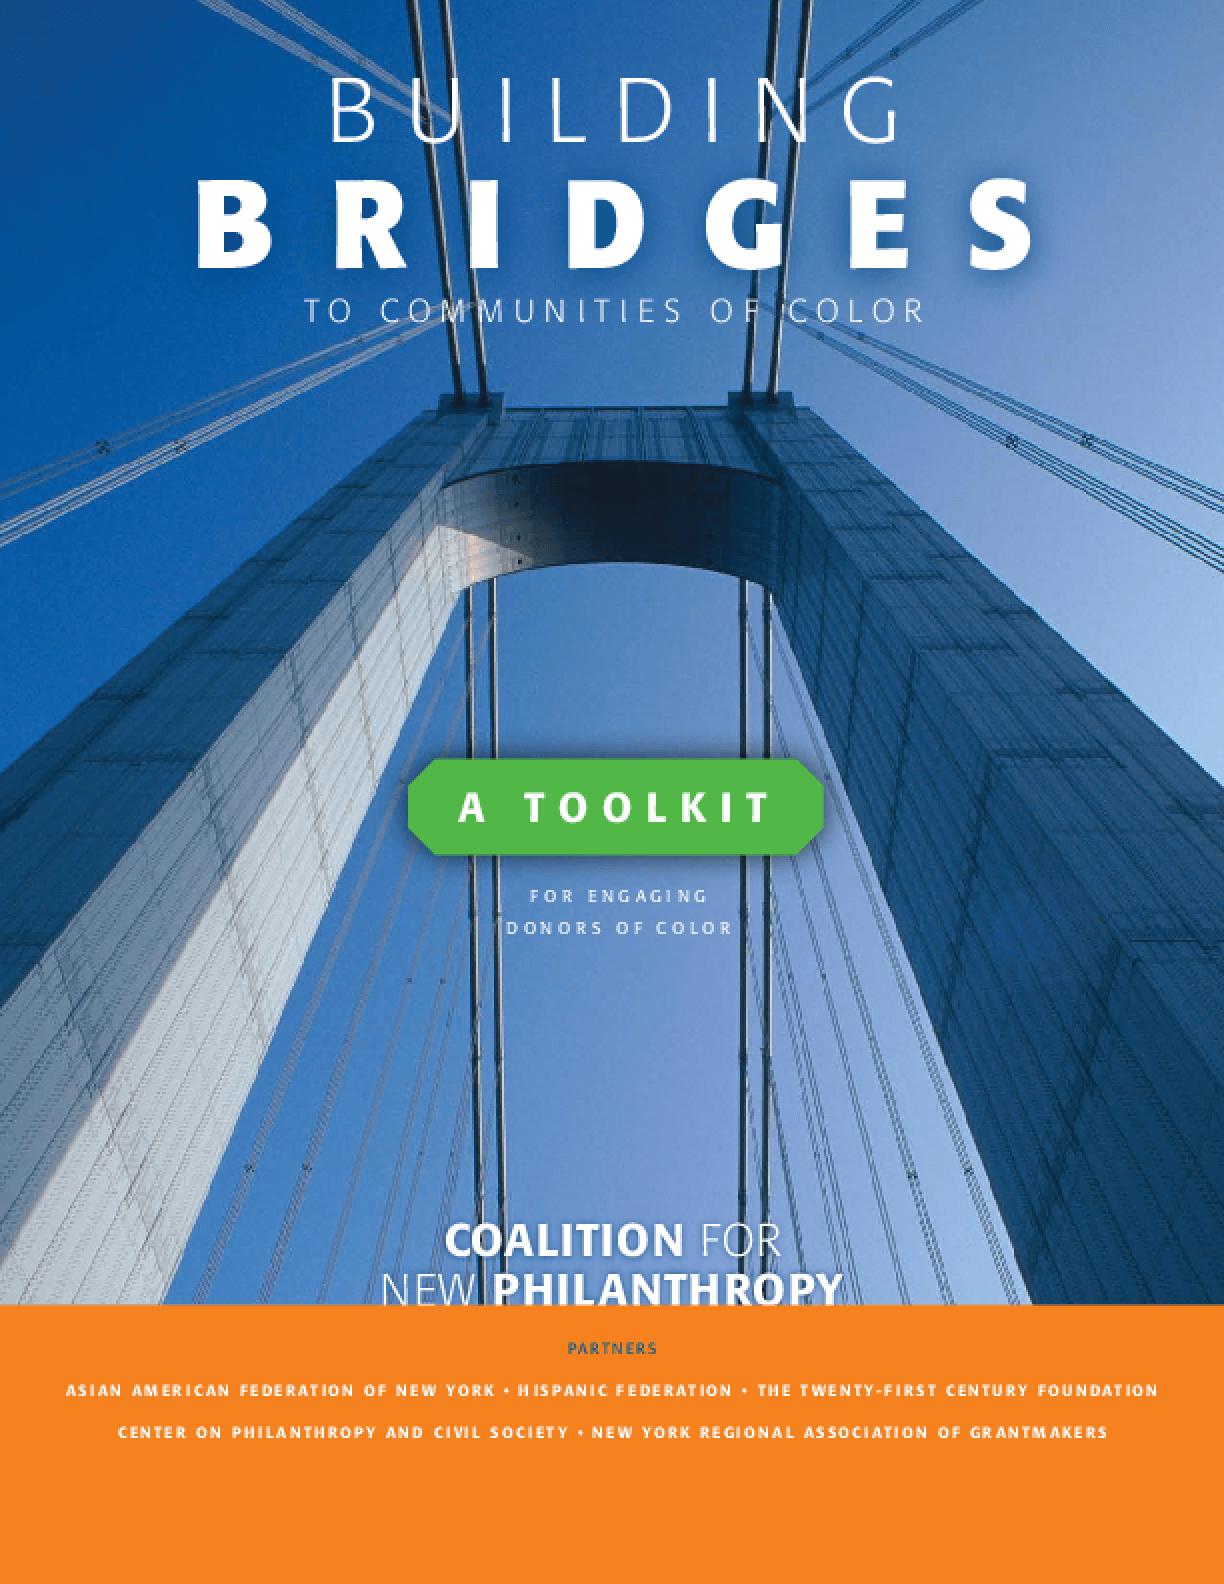 Building Bridges to Communities of Color: A Toolkit for Engaging Donors of Color